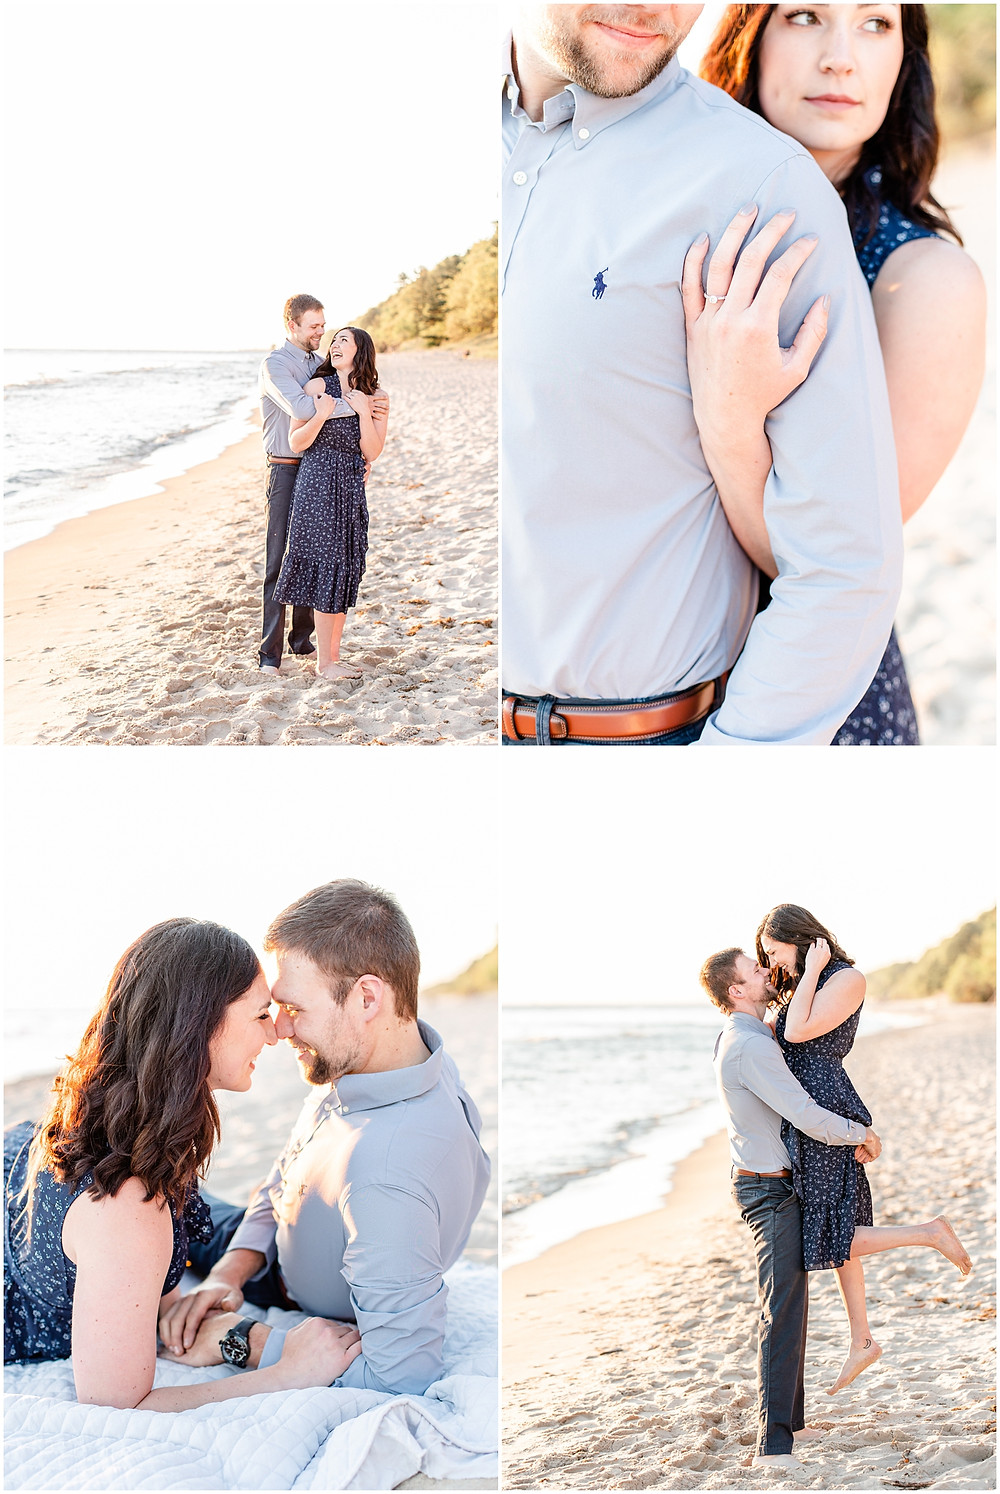 Josh and Andrea wedding photography husband and wife photographer team michigan pictures Lake Harbor Park engagement pictures session photo shoot fiance laughing standing lifting beach laying down